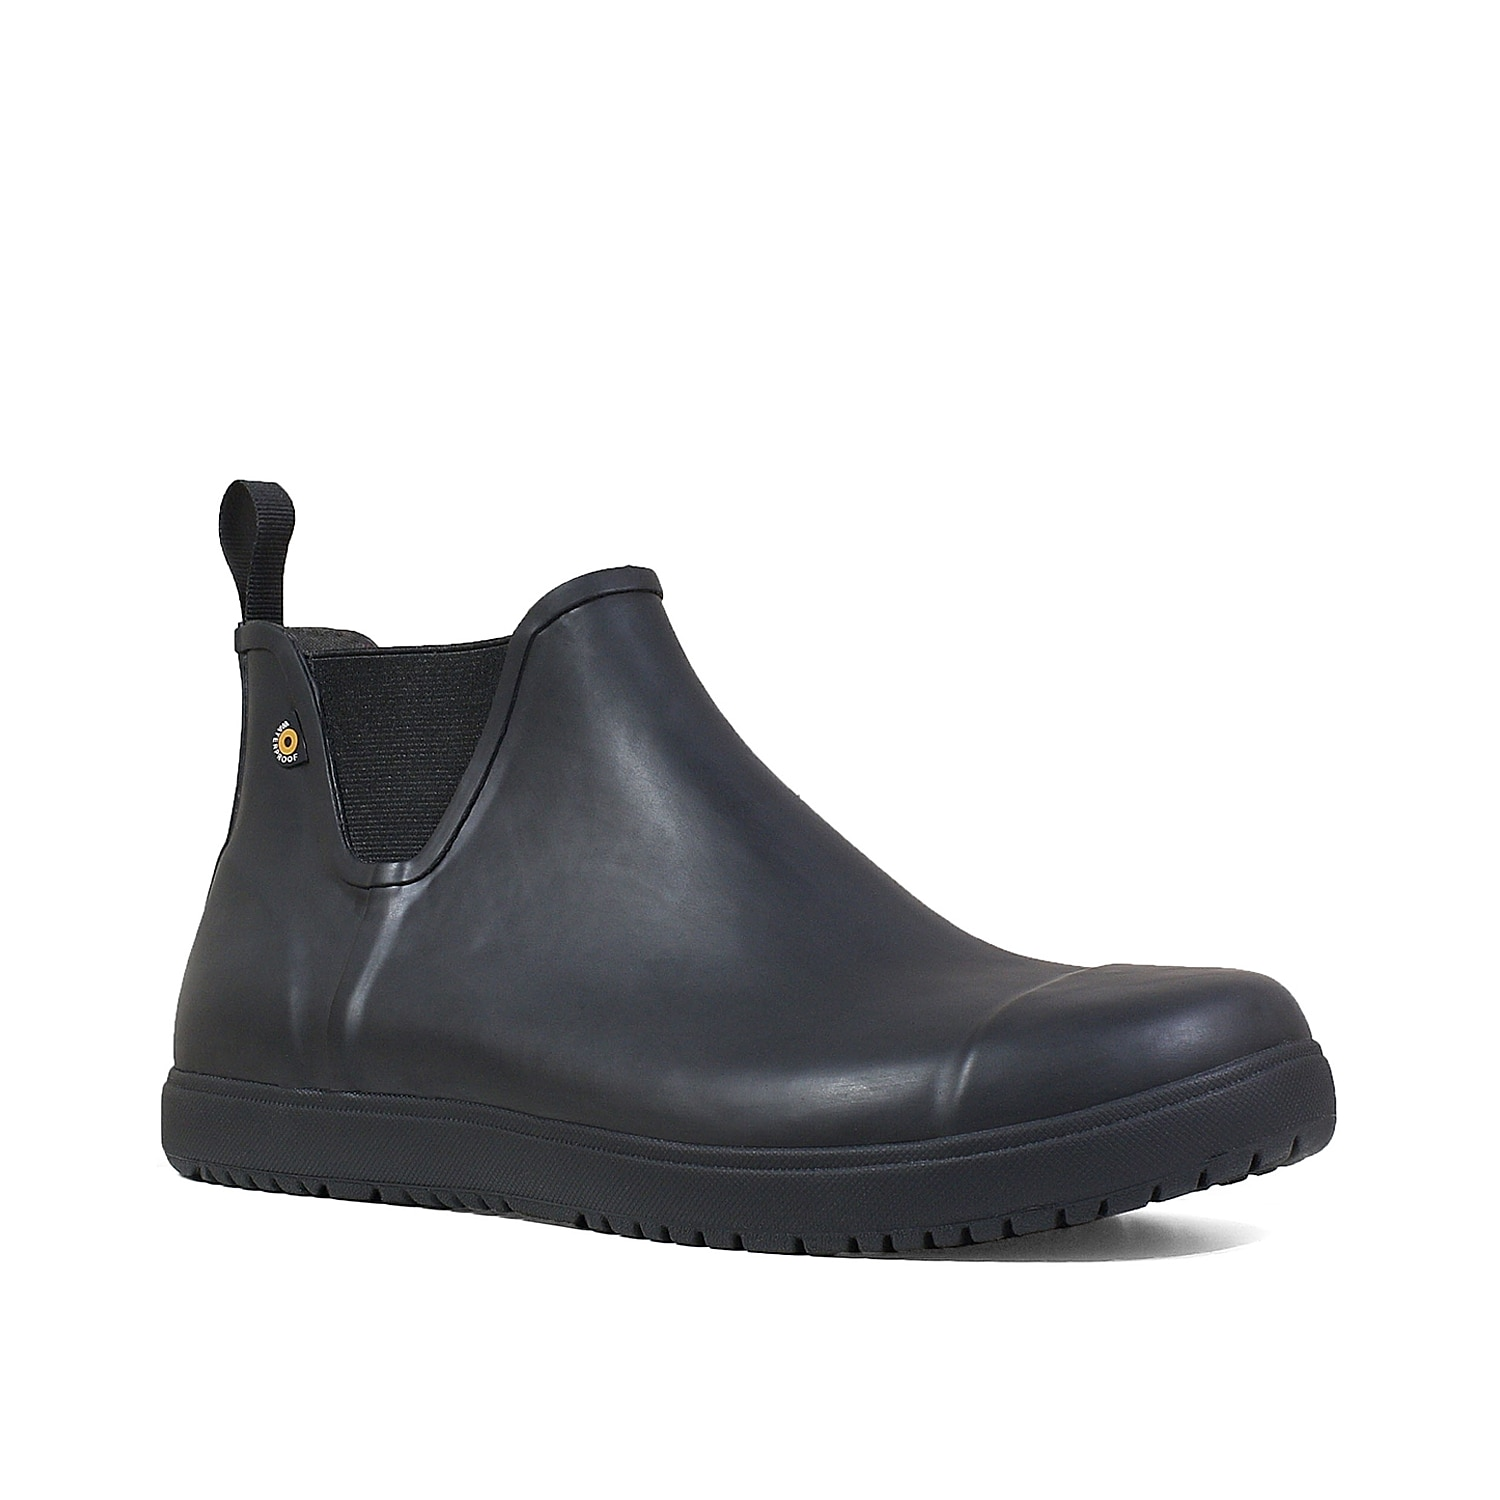 Suitable for yard work or running errands in the rain, the Overcast boot from Bogs will be perfect for you. The waterproof rubber and slip-resistant sole will keep you feeling steady, while Chelsea goring provides pull-on comfort.